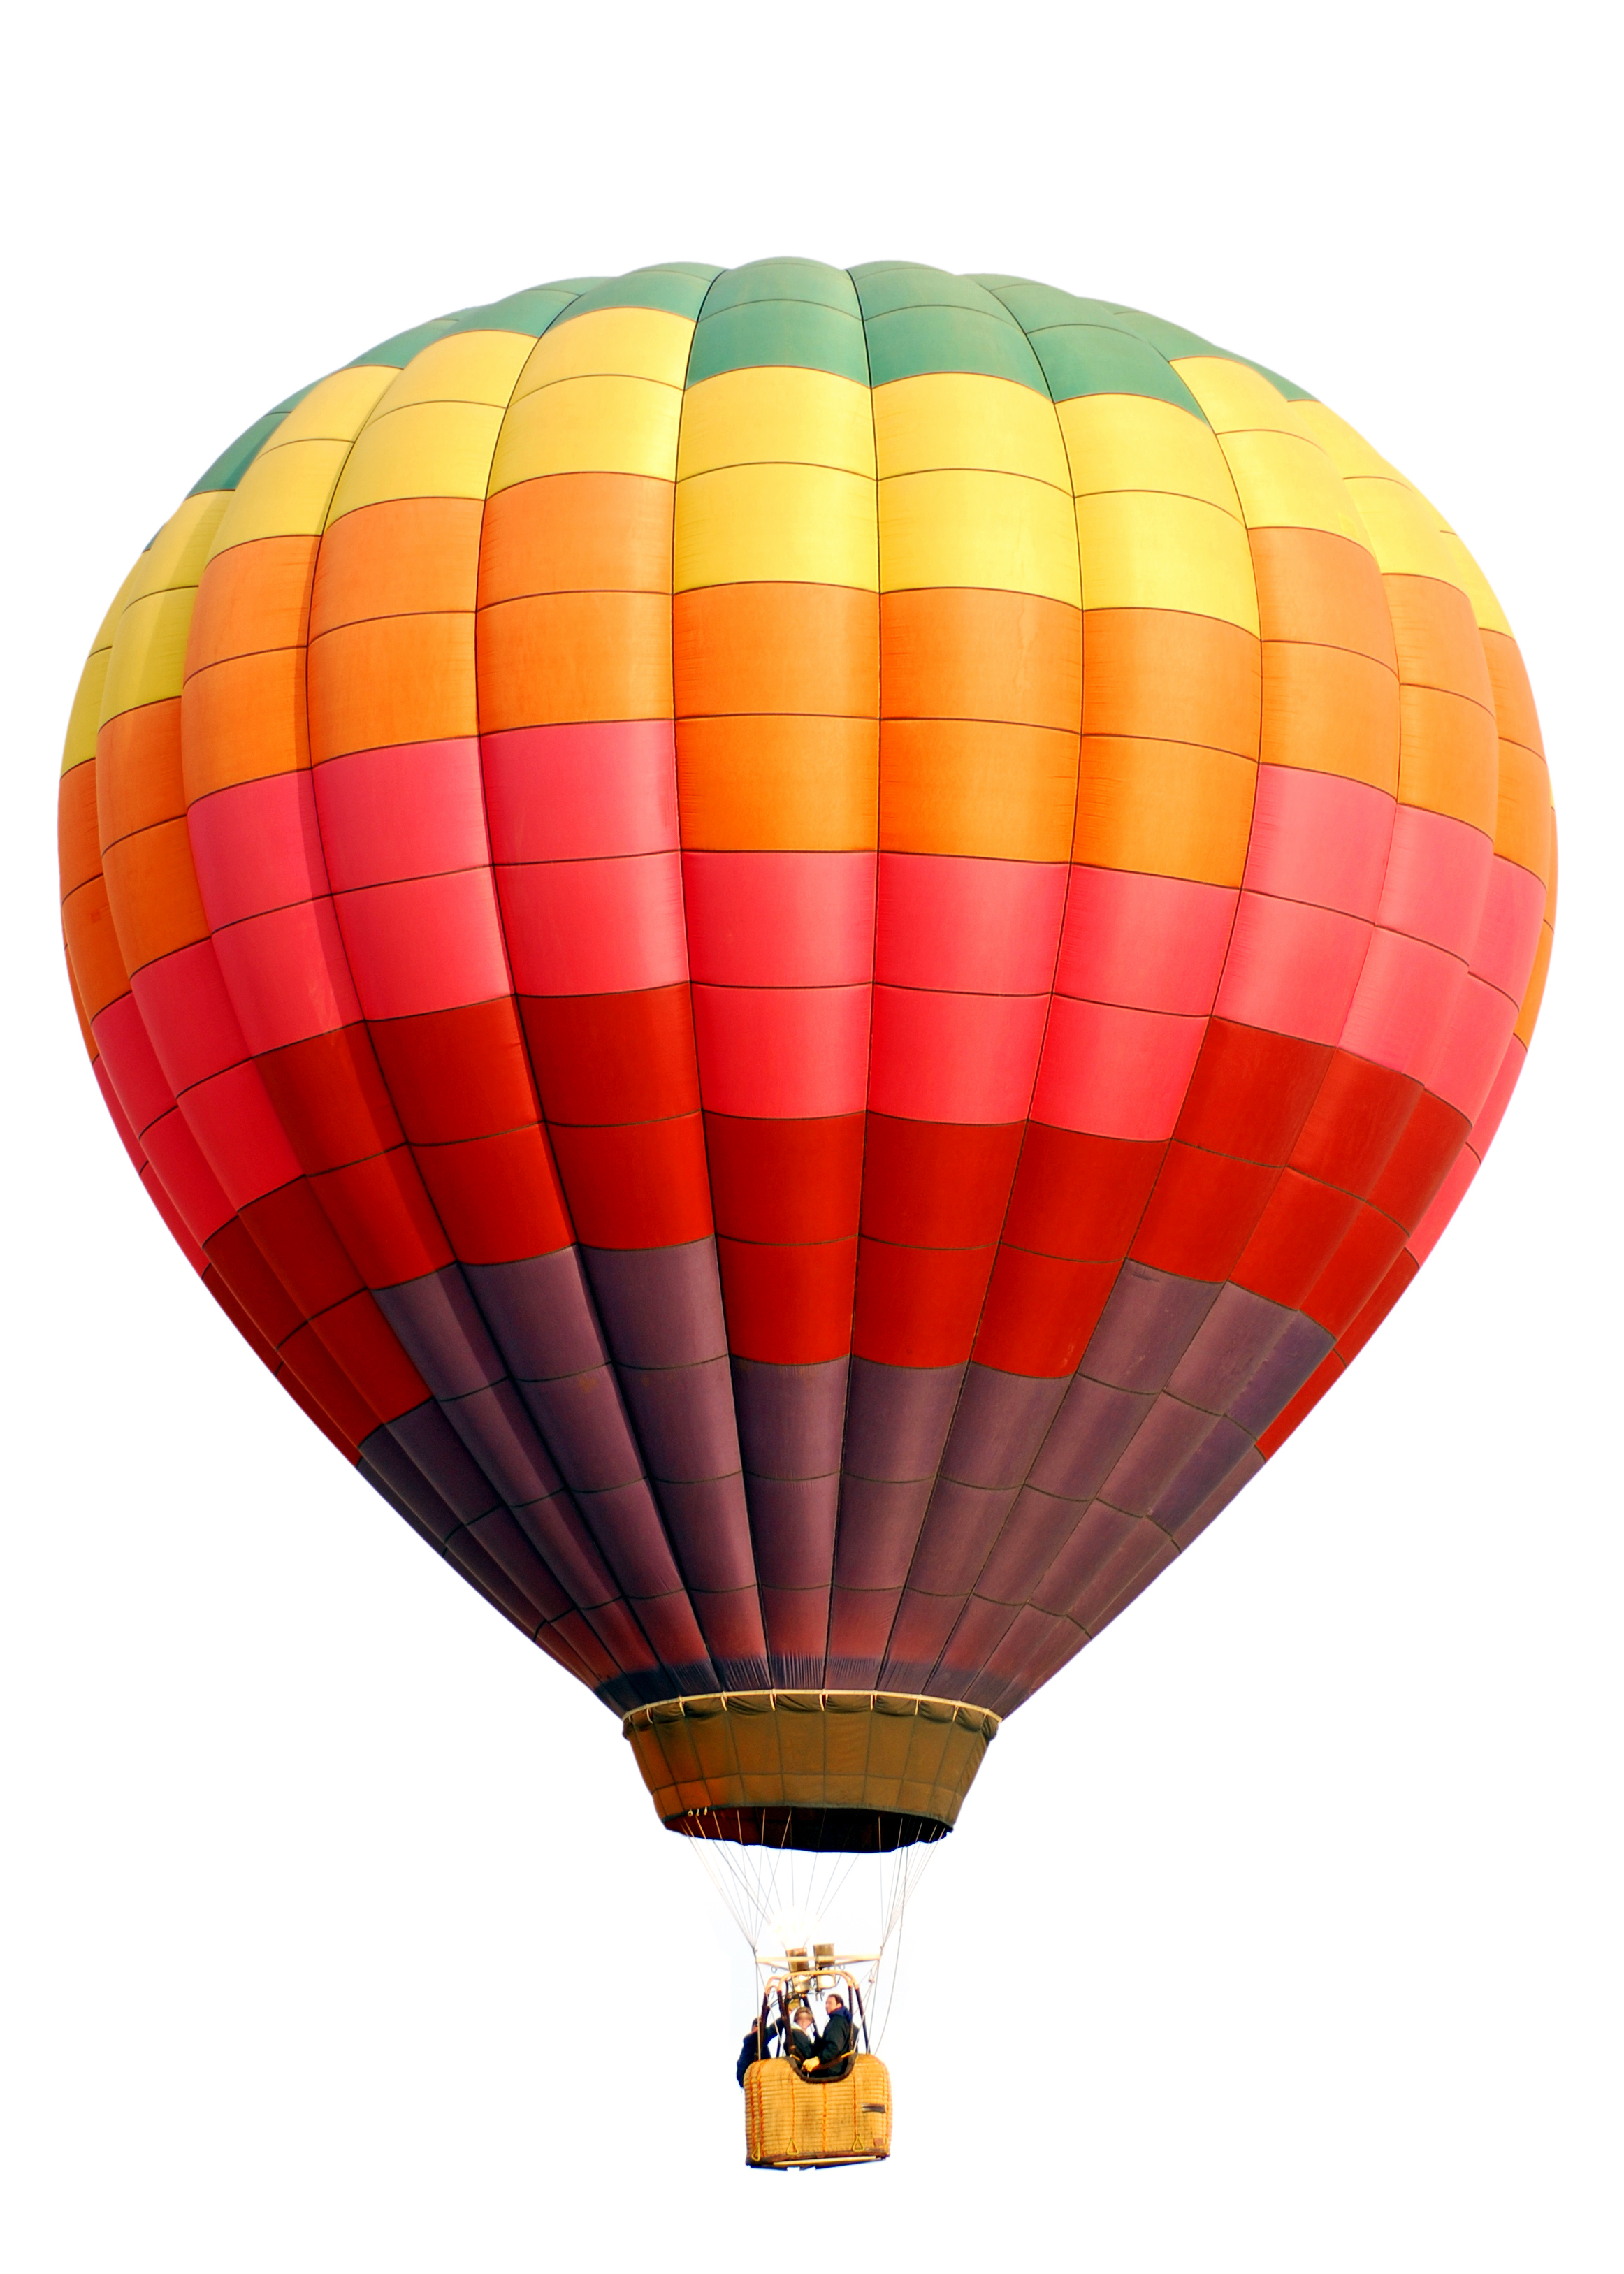 insurance for hot air balloons